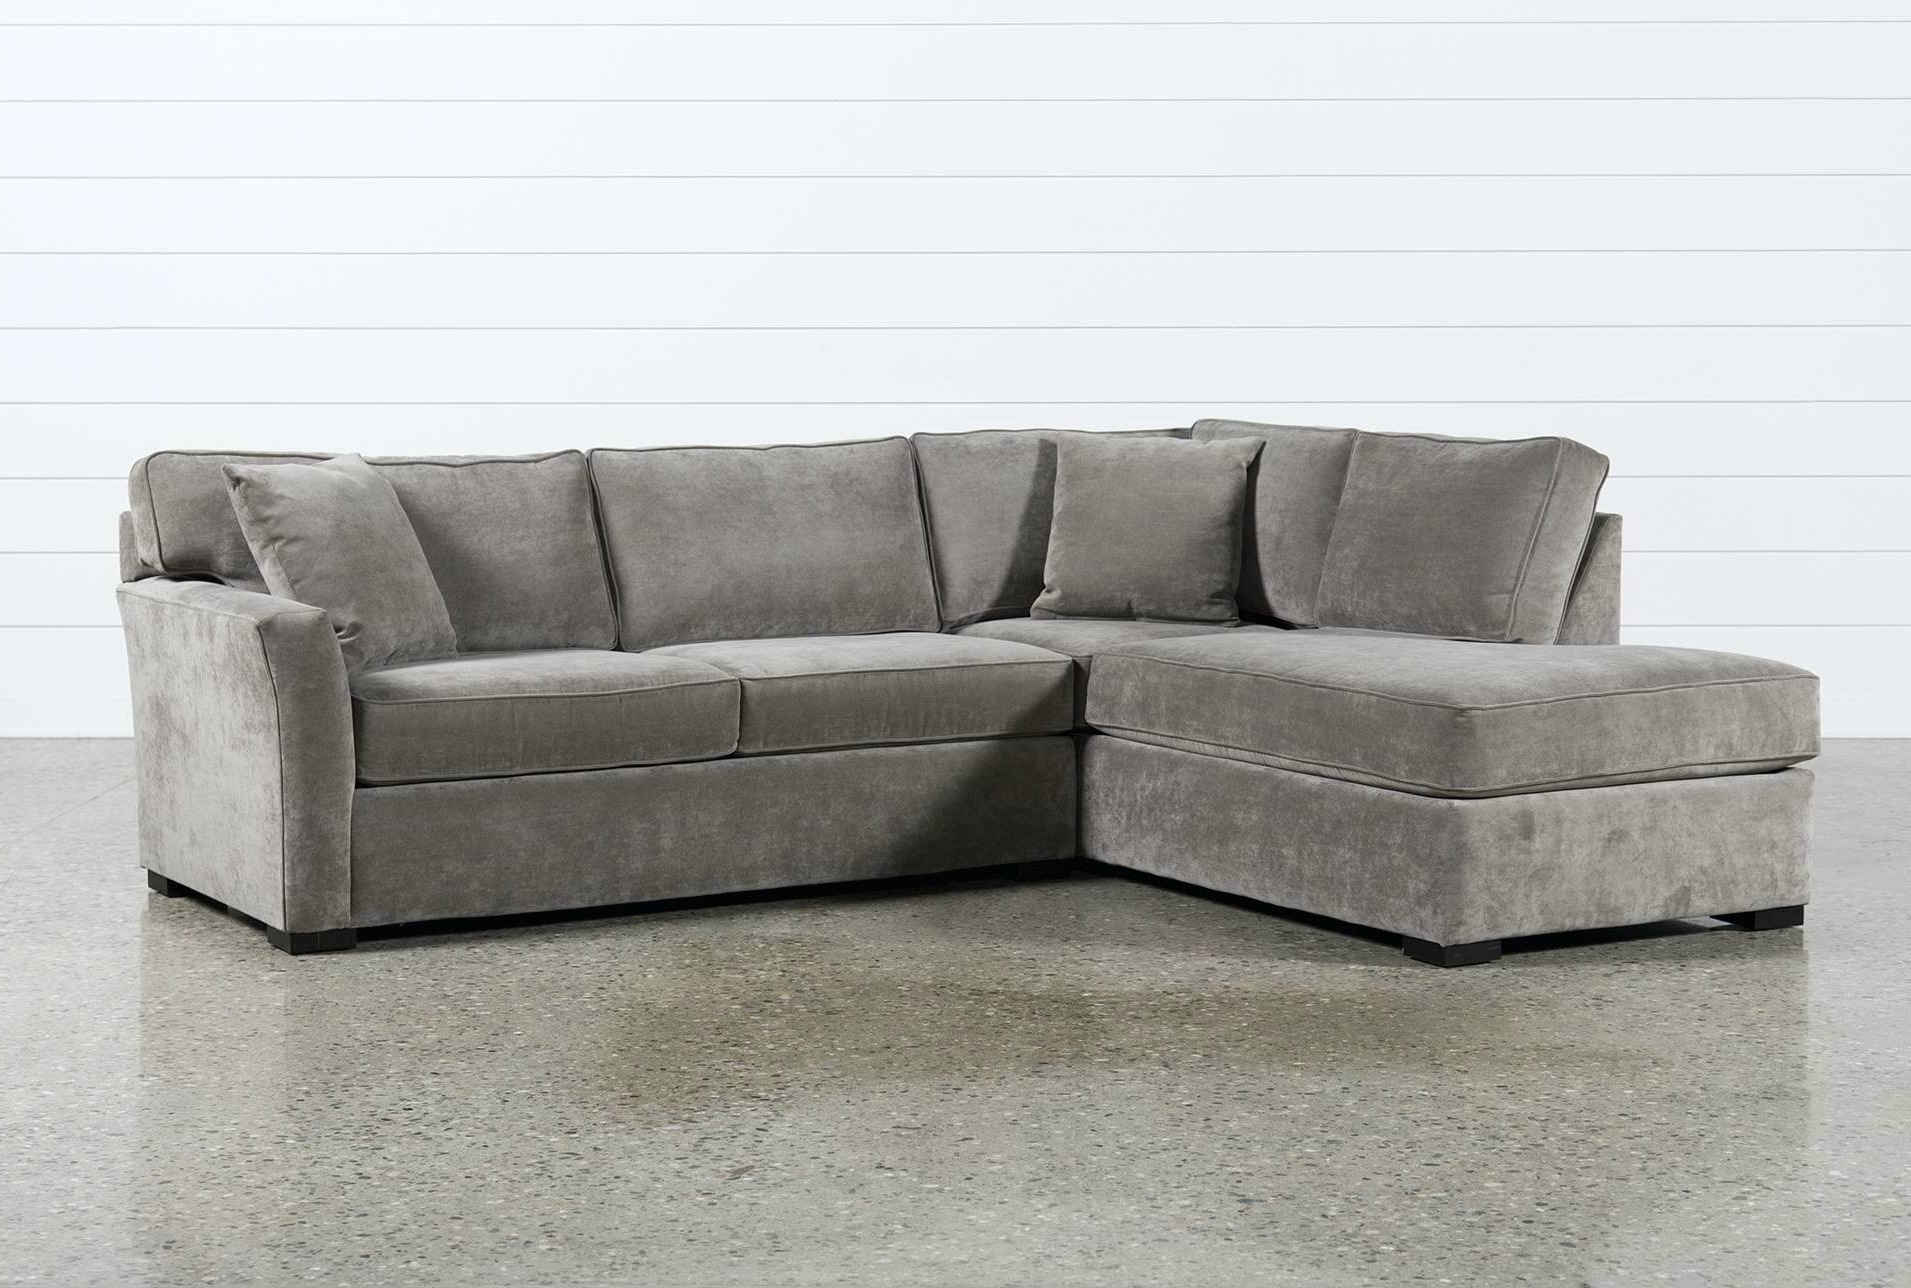 Nashville Sectional Sofas Within Most Recently Released Sleep Sofas Sleeper Sectional Rooms To Go Sofa For Sale In (View 16 of 20)